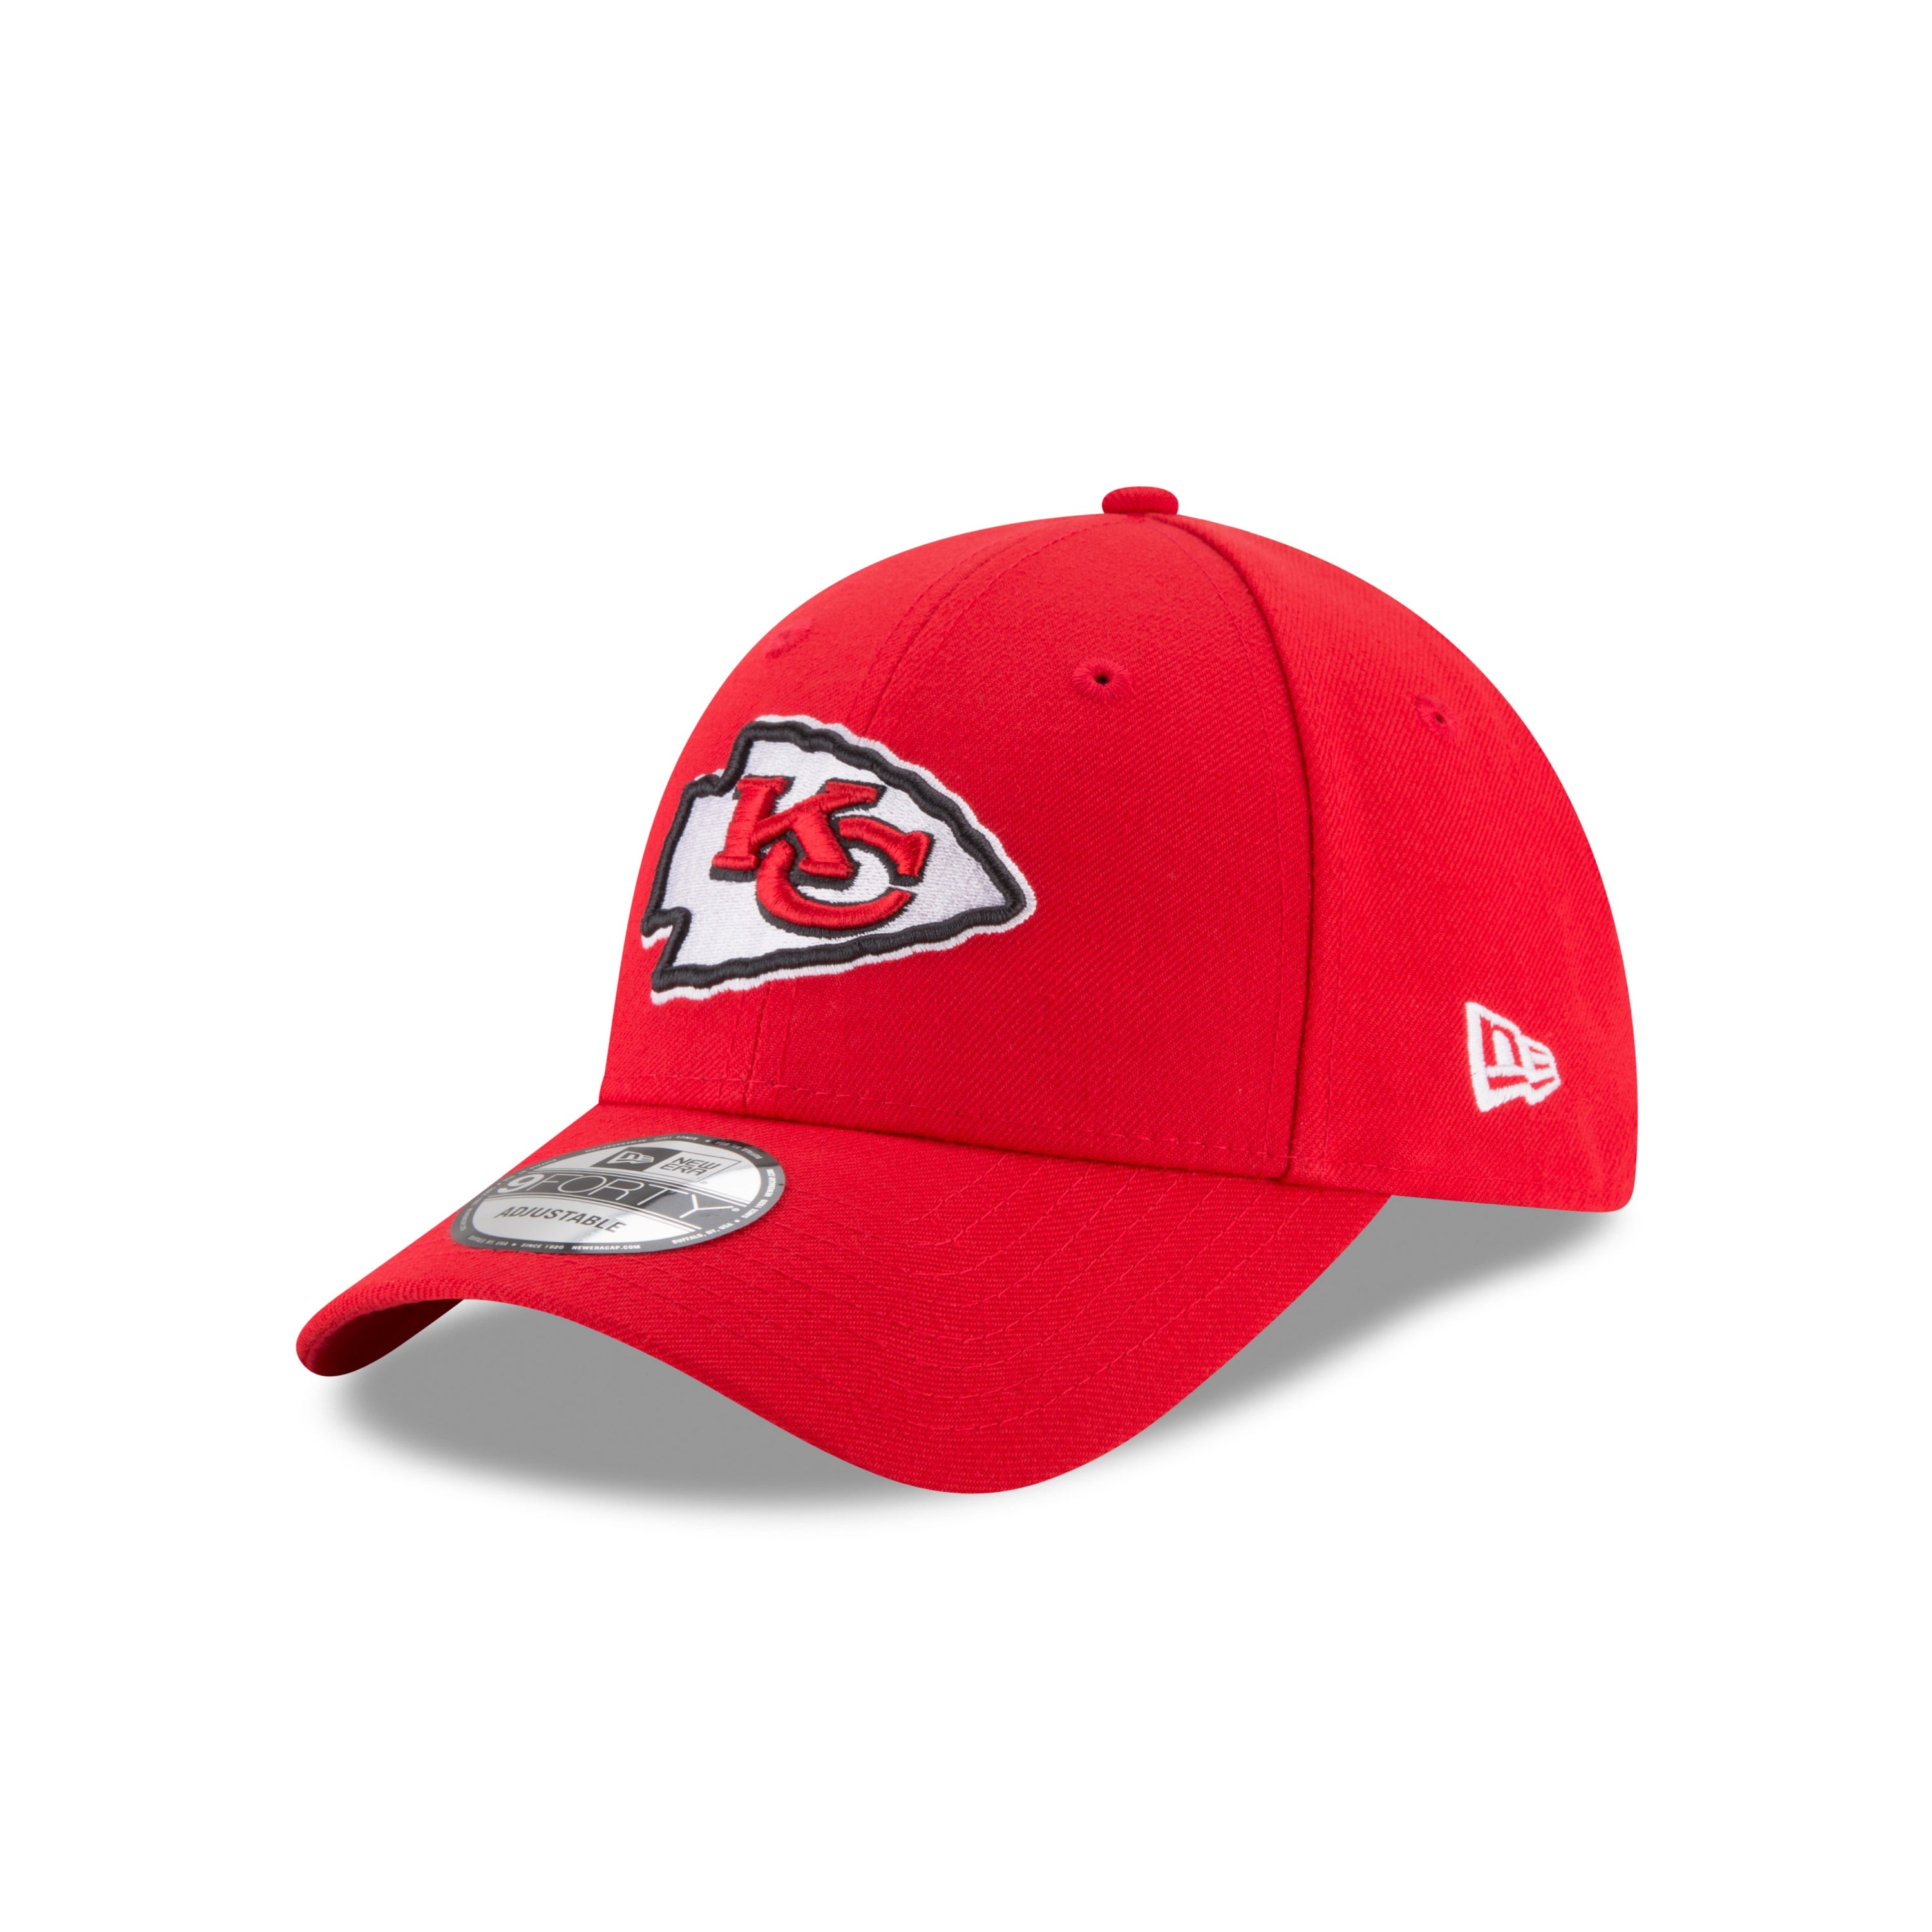 release date: 6d1af 5587a Shop New Era Mens The League Kansas City Chiefs, Red, Os - Red - On Sale -  Free Shipping On Orders Over  45 - Overstock.com - 22538556